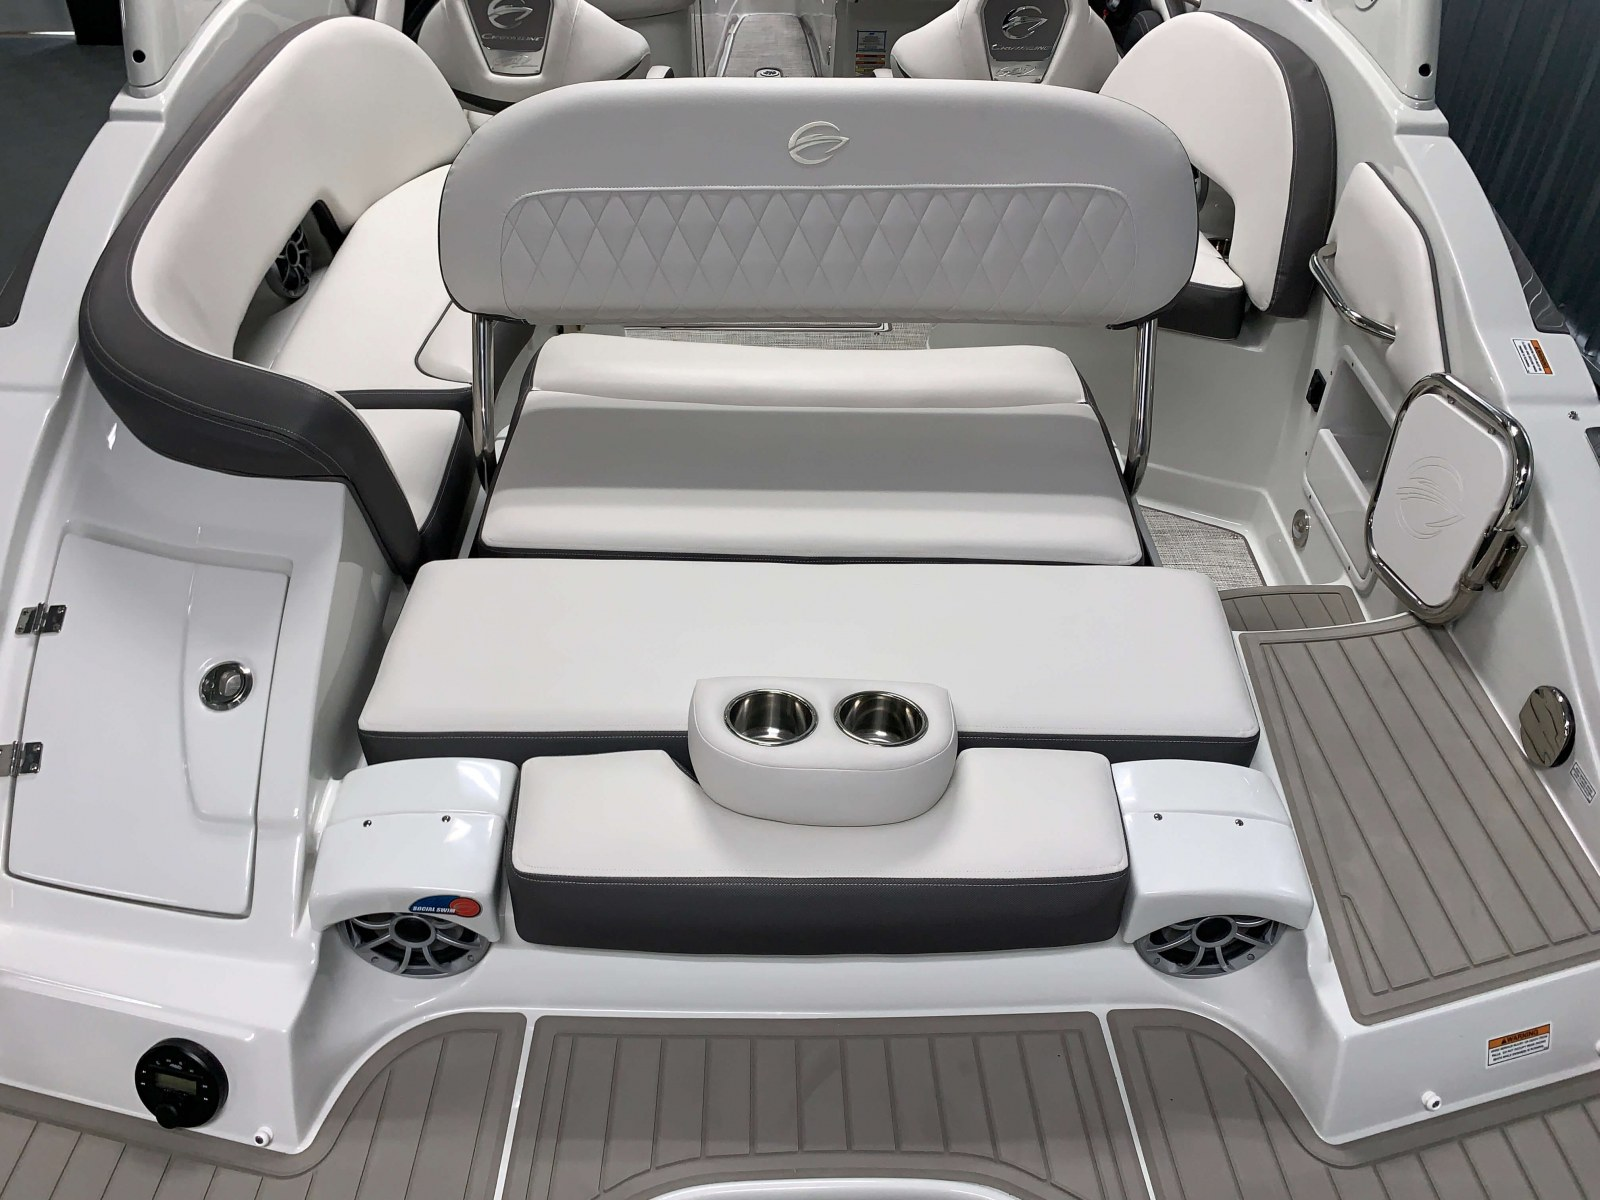 Rear Facing Seat of the 2021 Crownline 270 XSS Bowrider Boat